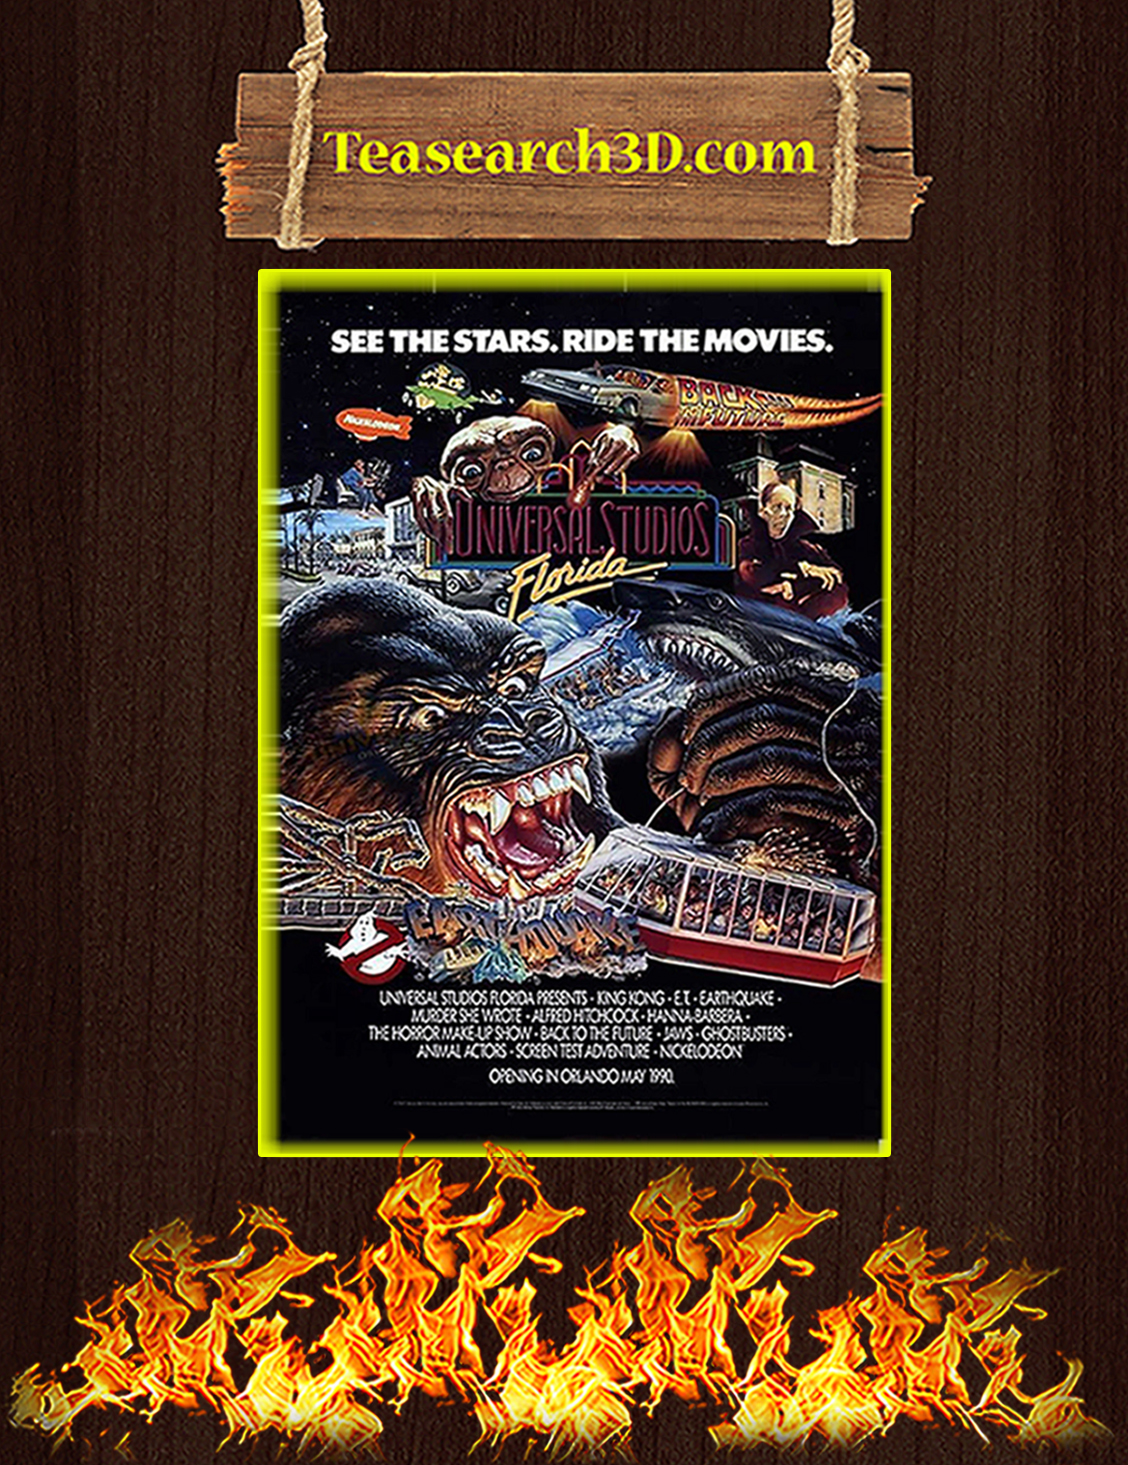 Universal studios see the stars ride the movies poster A3